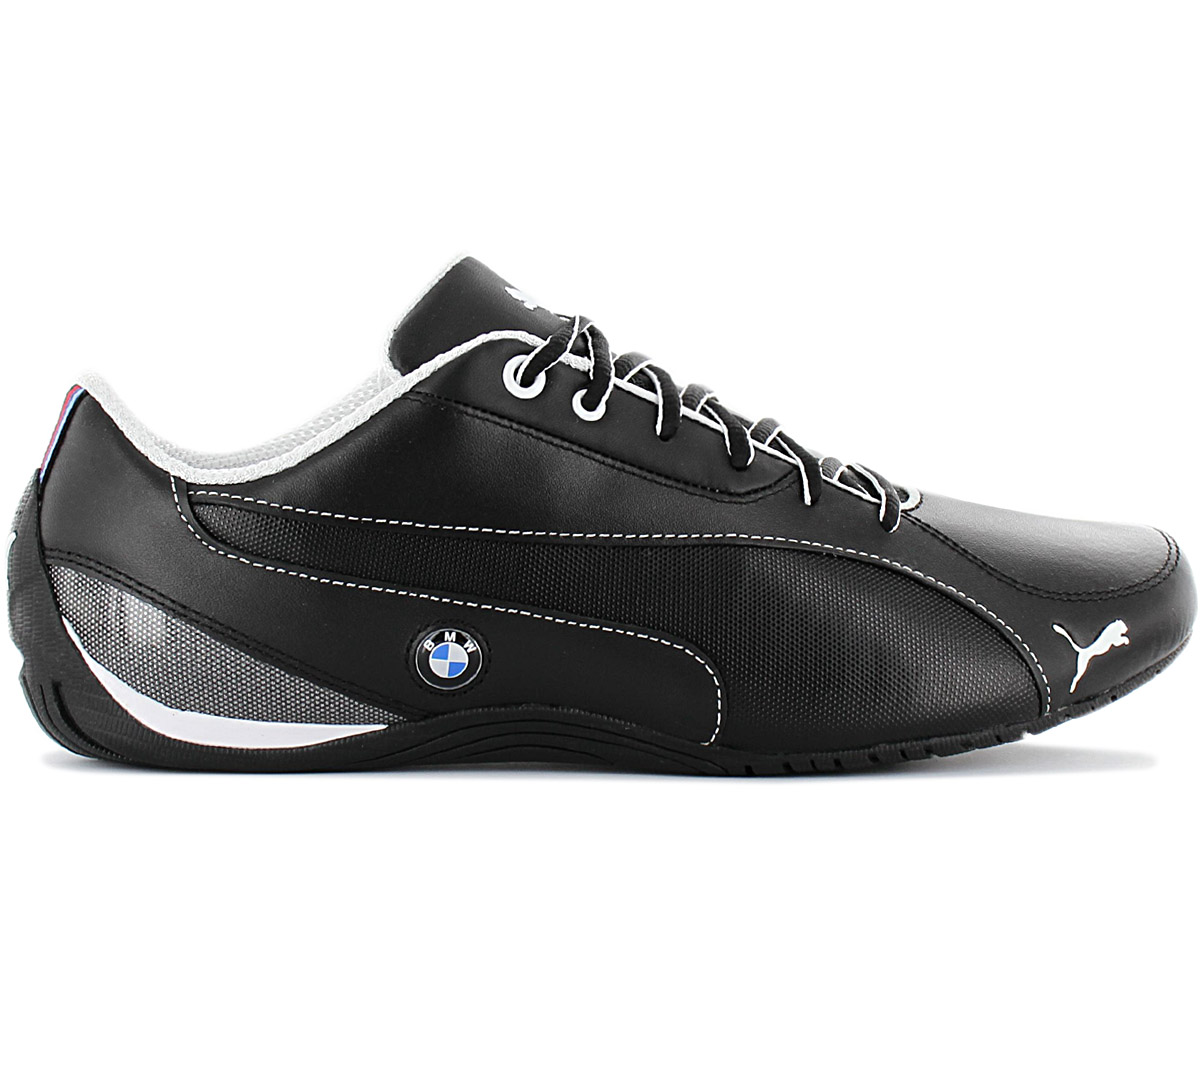 Details about Puma Bmw Drift Cat 5 NM Men's Sneaker 304879-03 Motorsport  Shoes Trainers